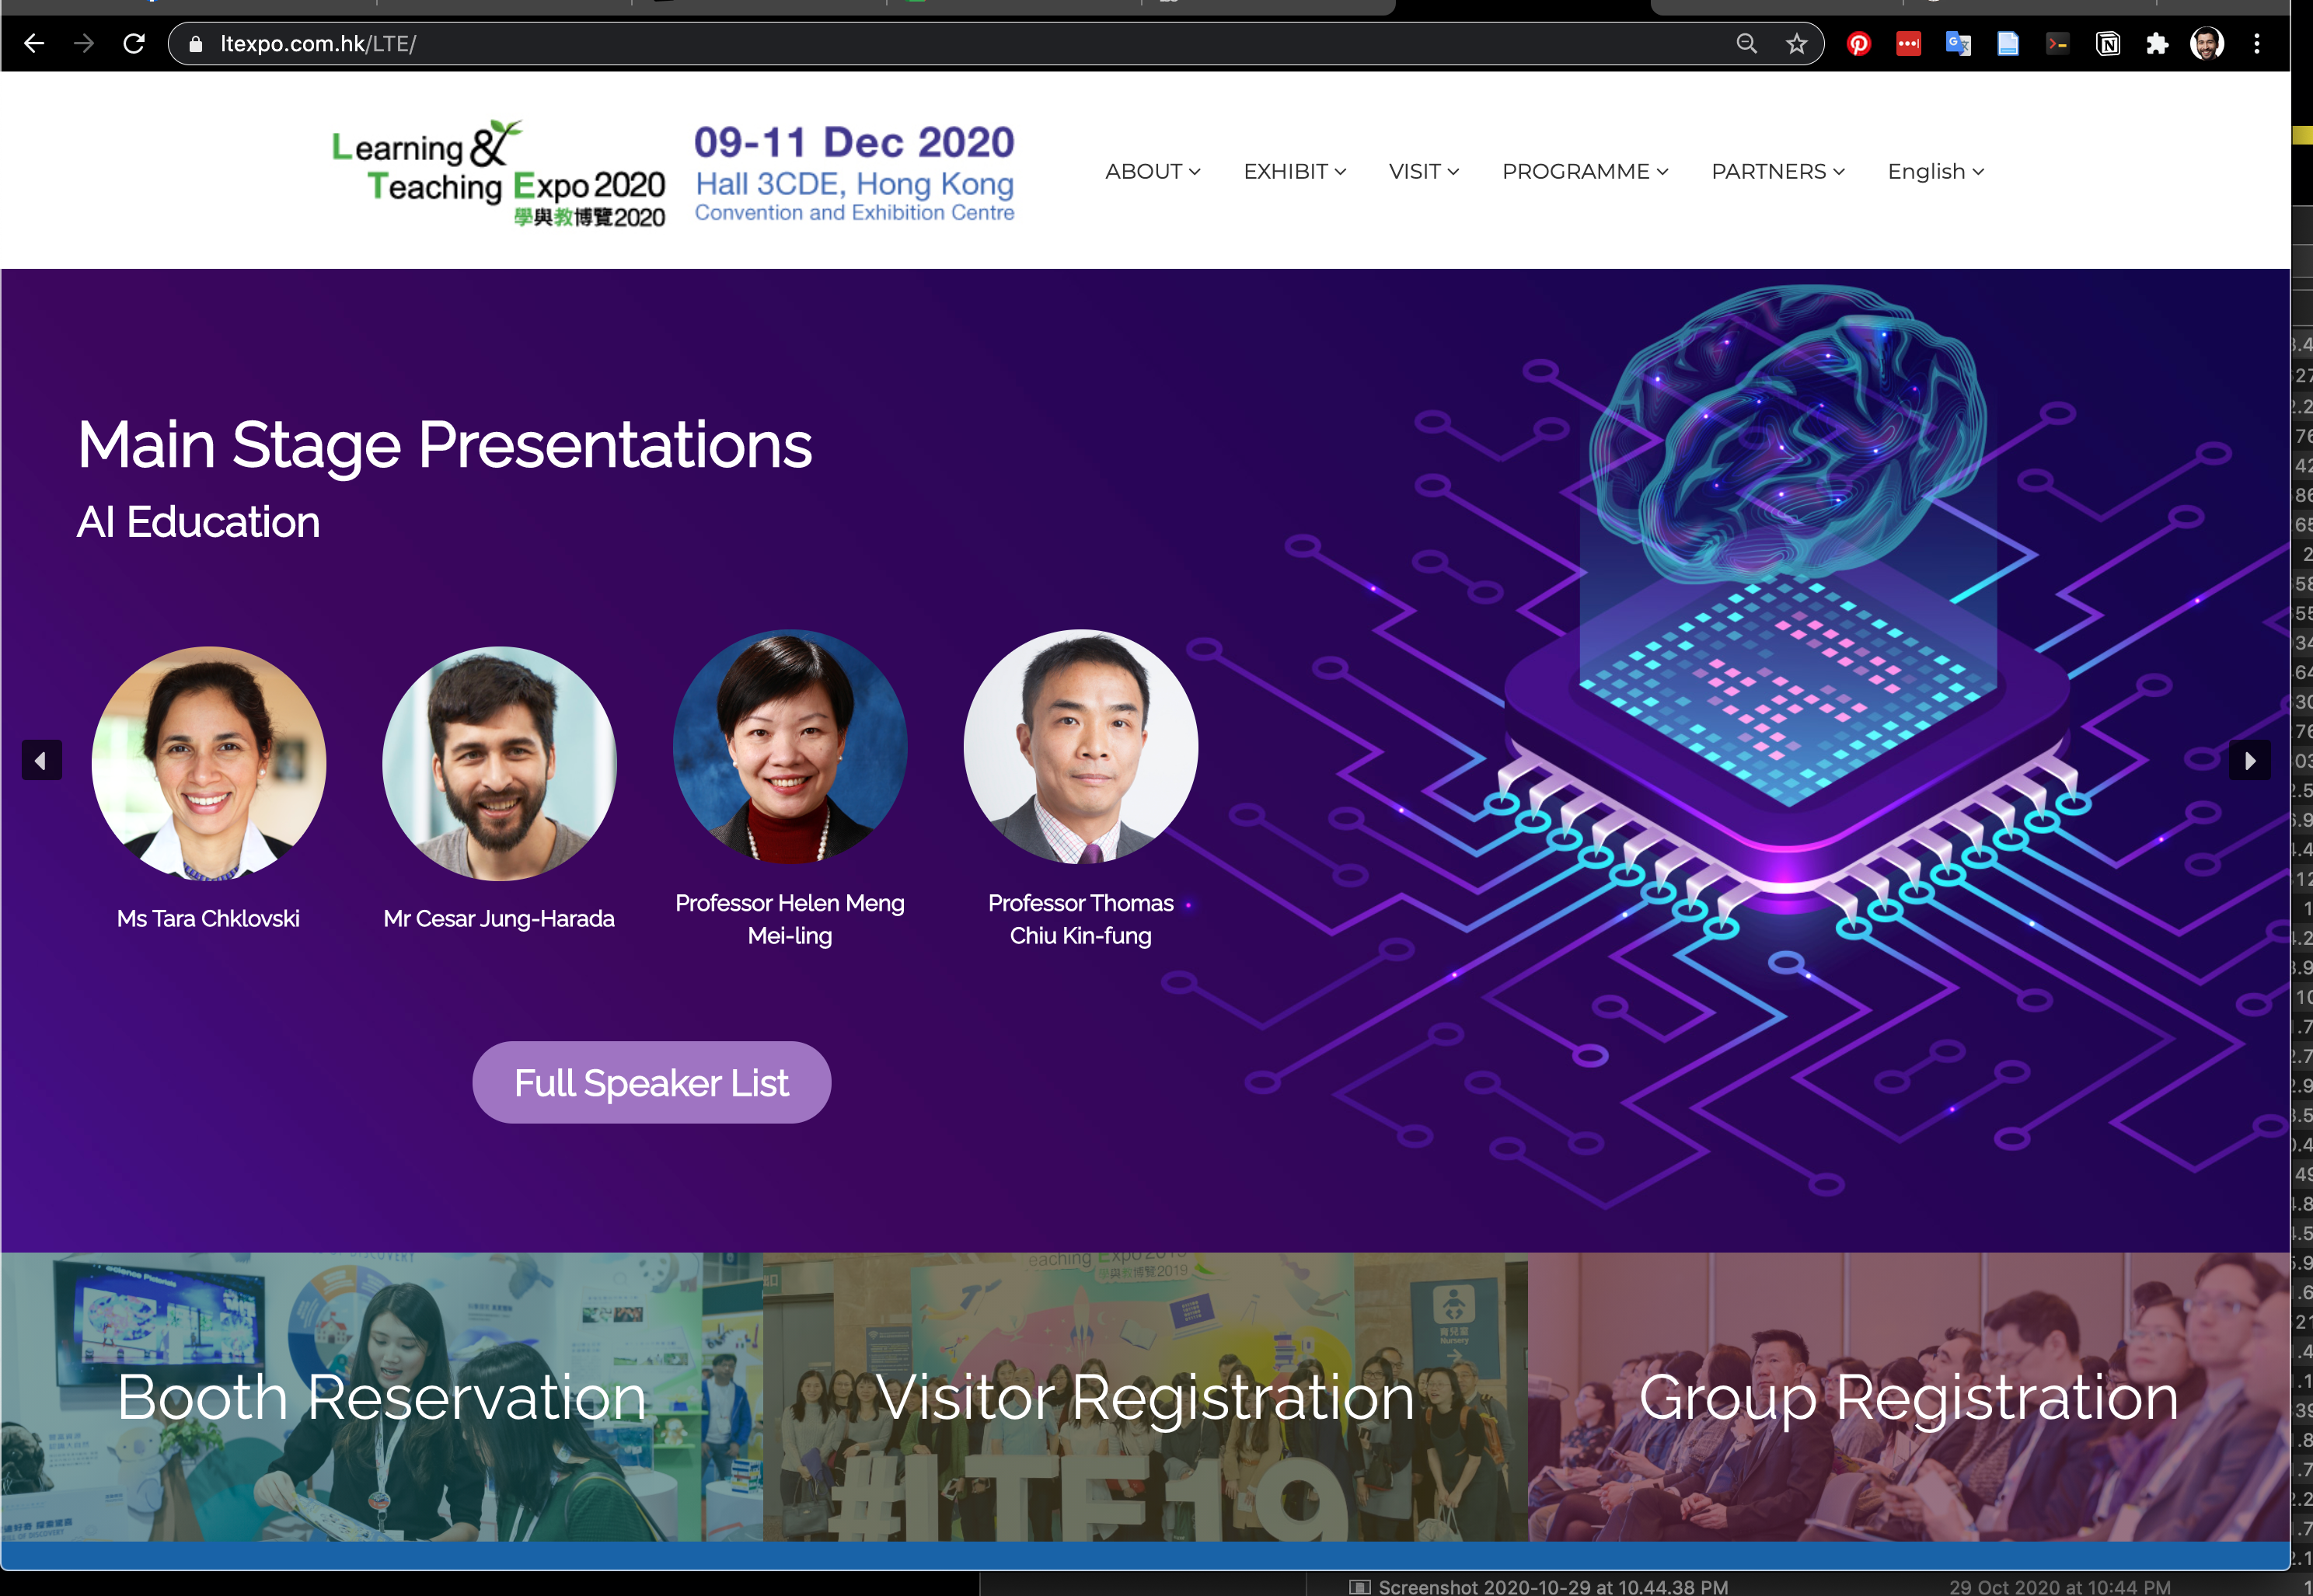 11th edition of Learning & Teaching Expo (LTE)